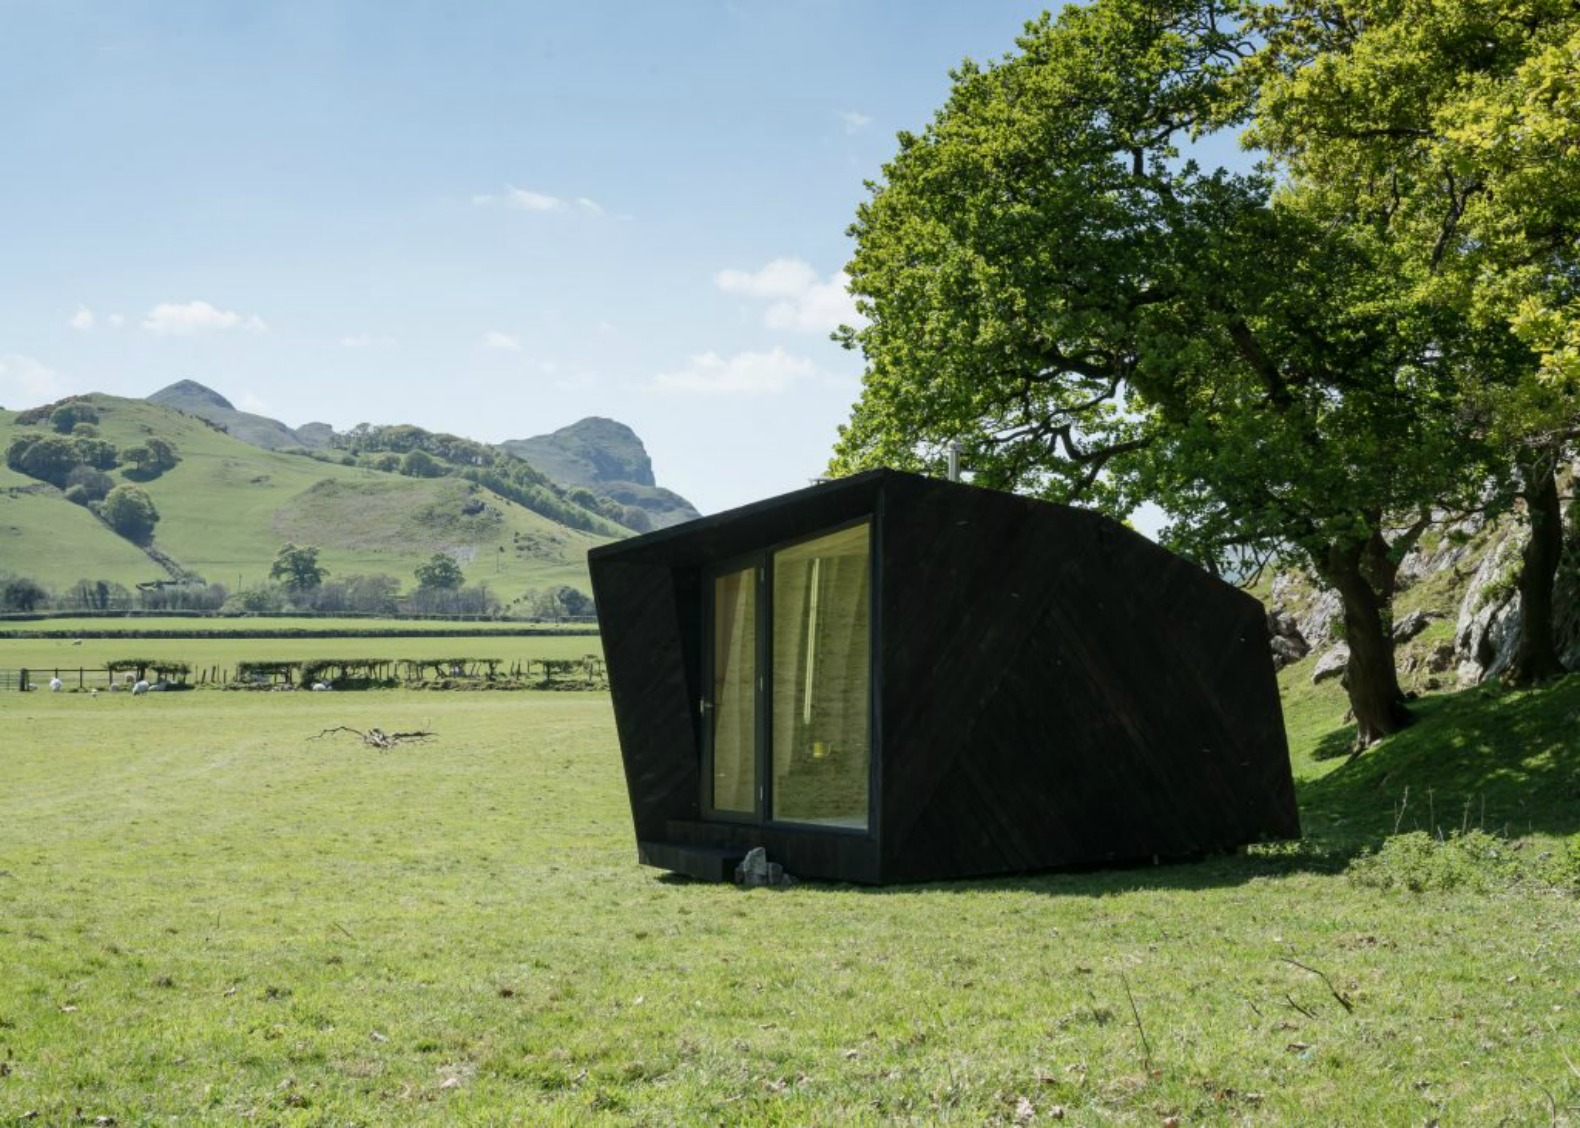 Pop Up Cabins : Tiny folklore inspired cabins pop up in the welsh